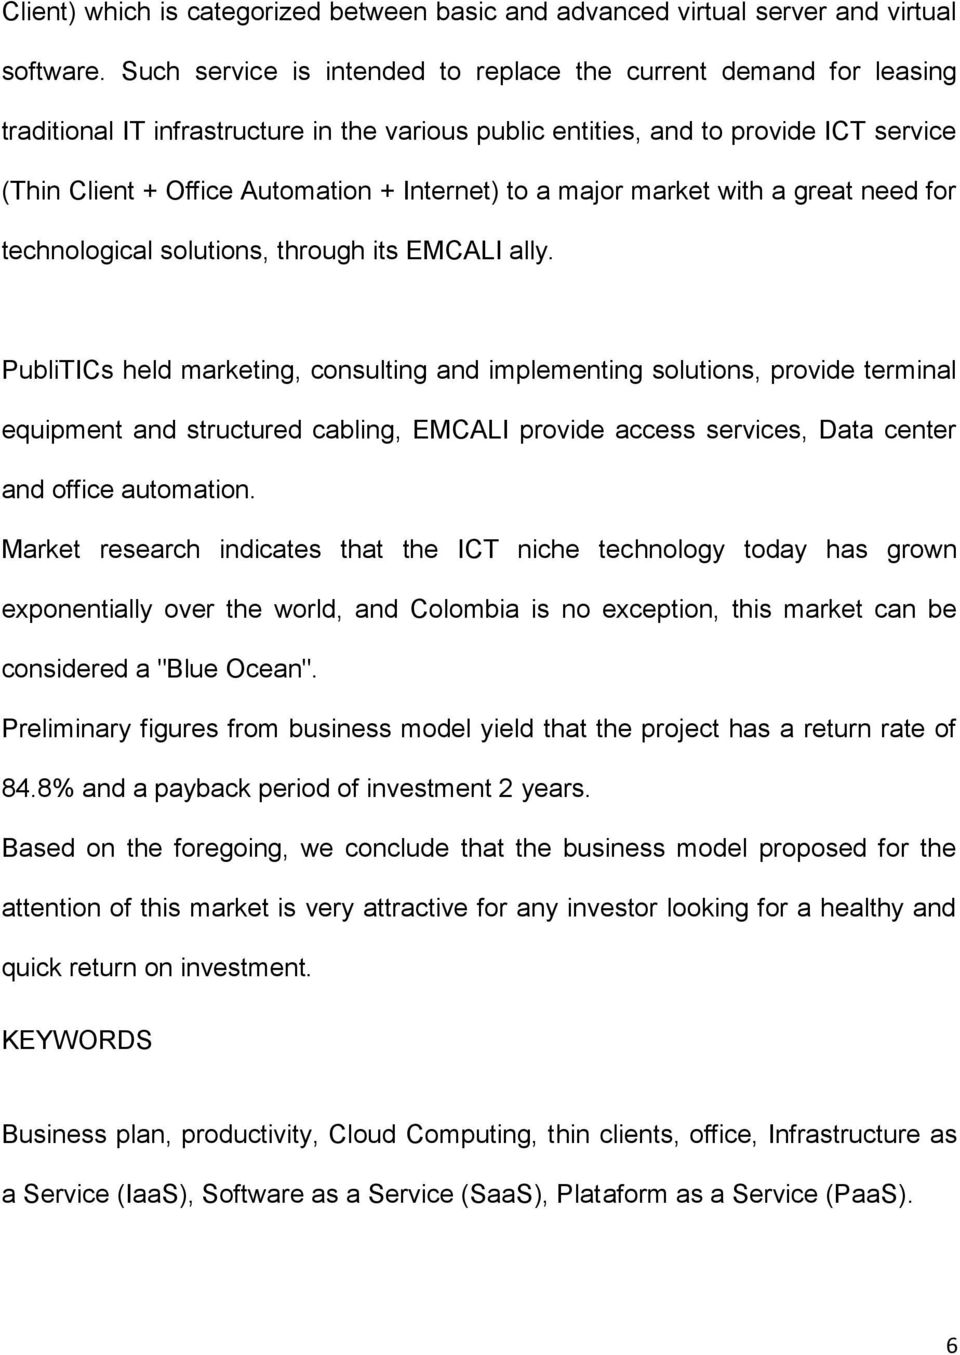 major market with a great need for technological solutions, through its EMCALI ally.